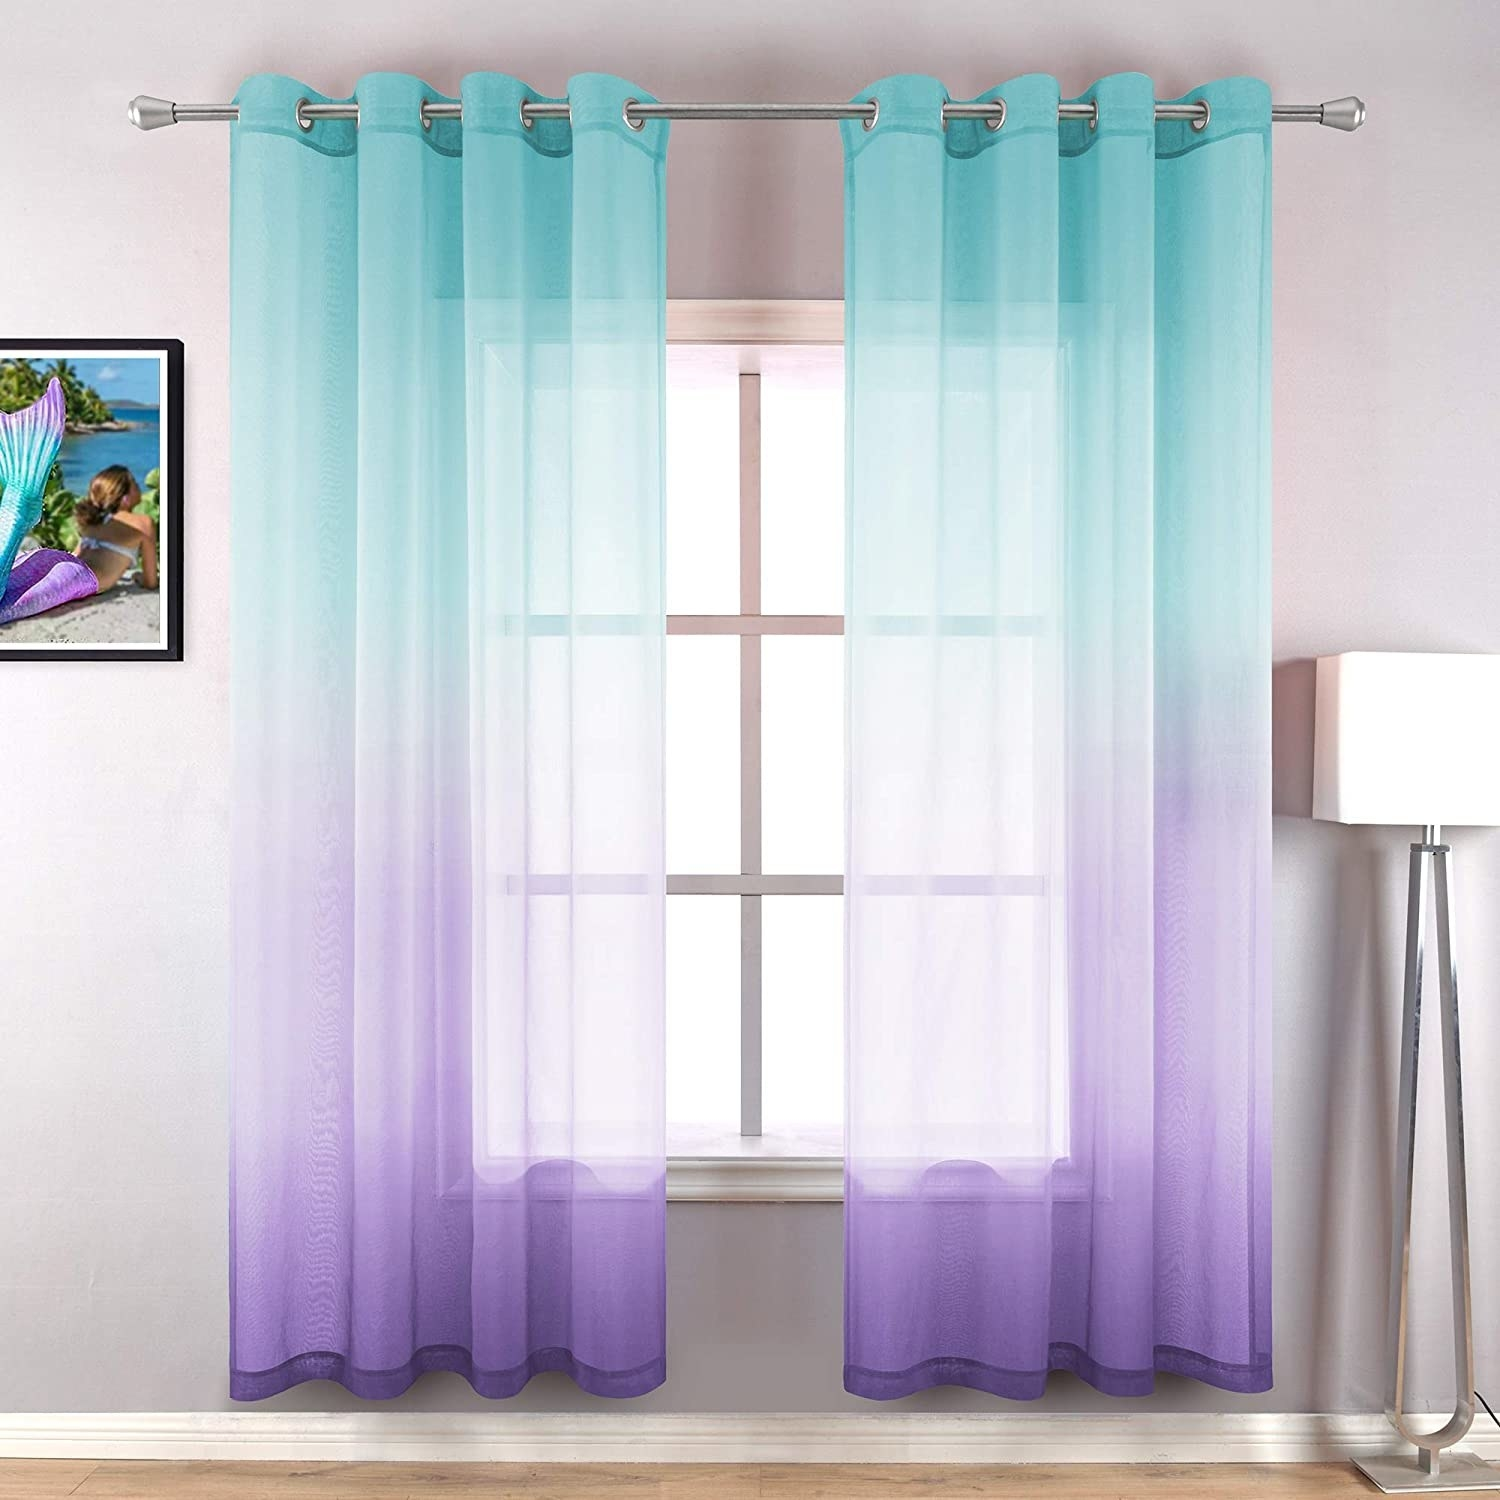 two blue and purple ombre curtain panels hung in a window